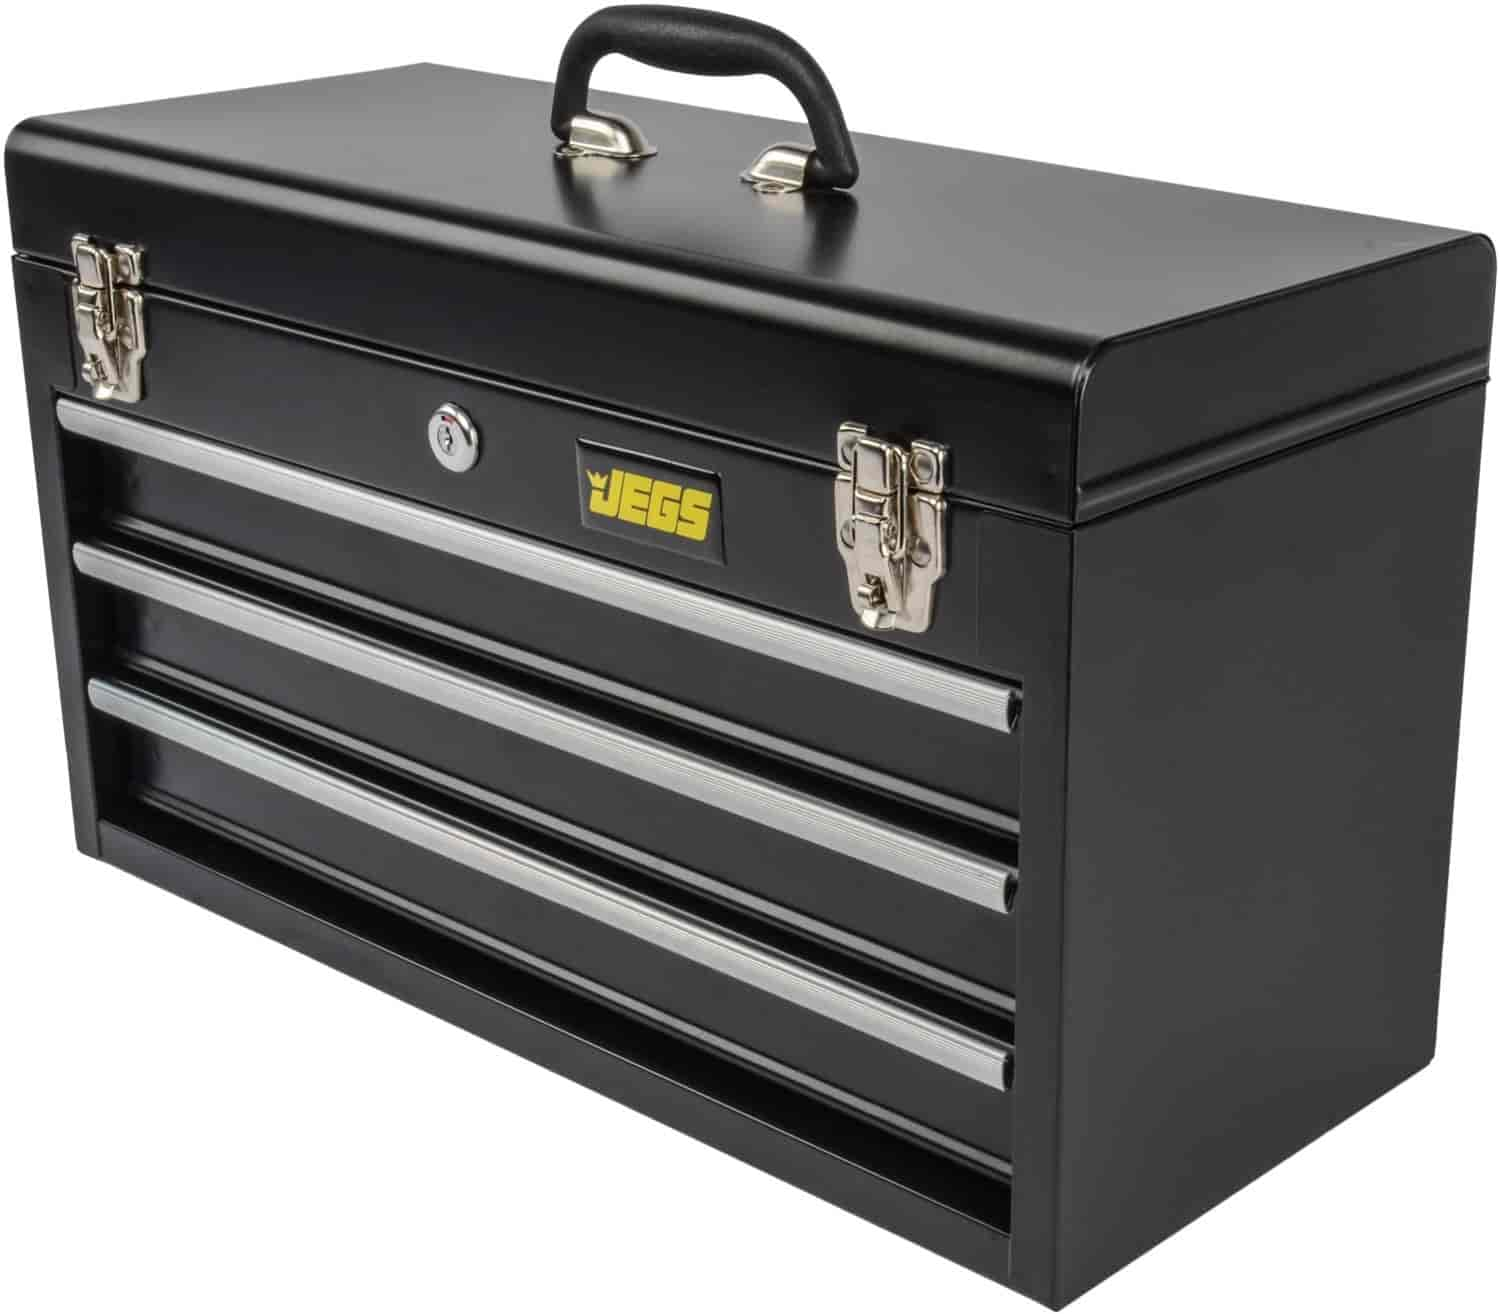 Superior JEGS 3 Drawer Portable Toolbox. JEGS 81400